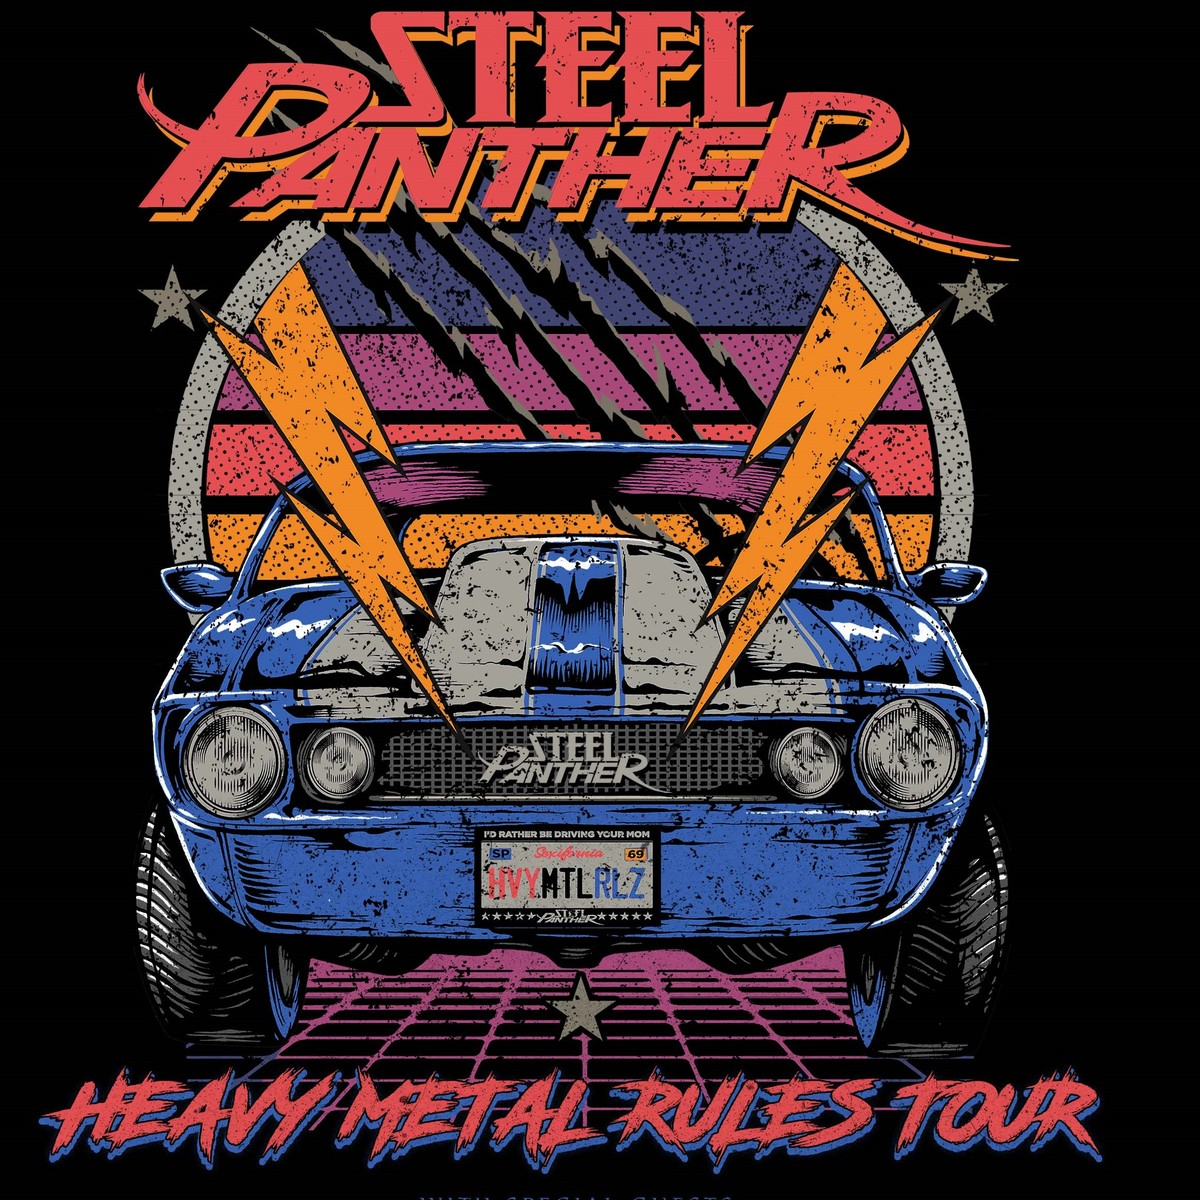 SteelPanther_Chesterfield1x1.jpg